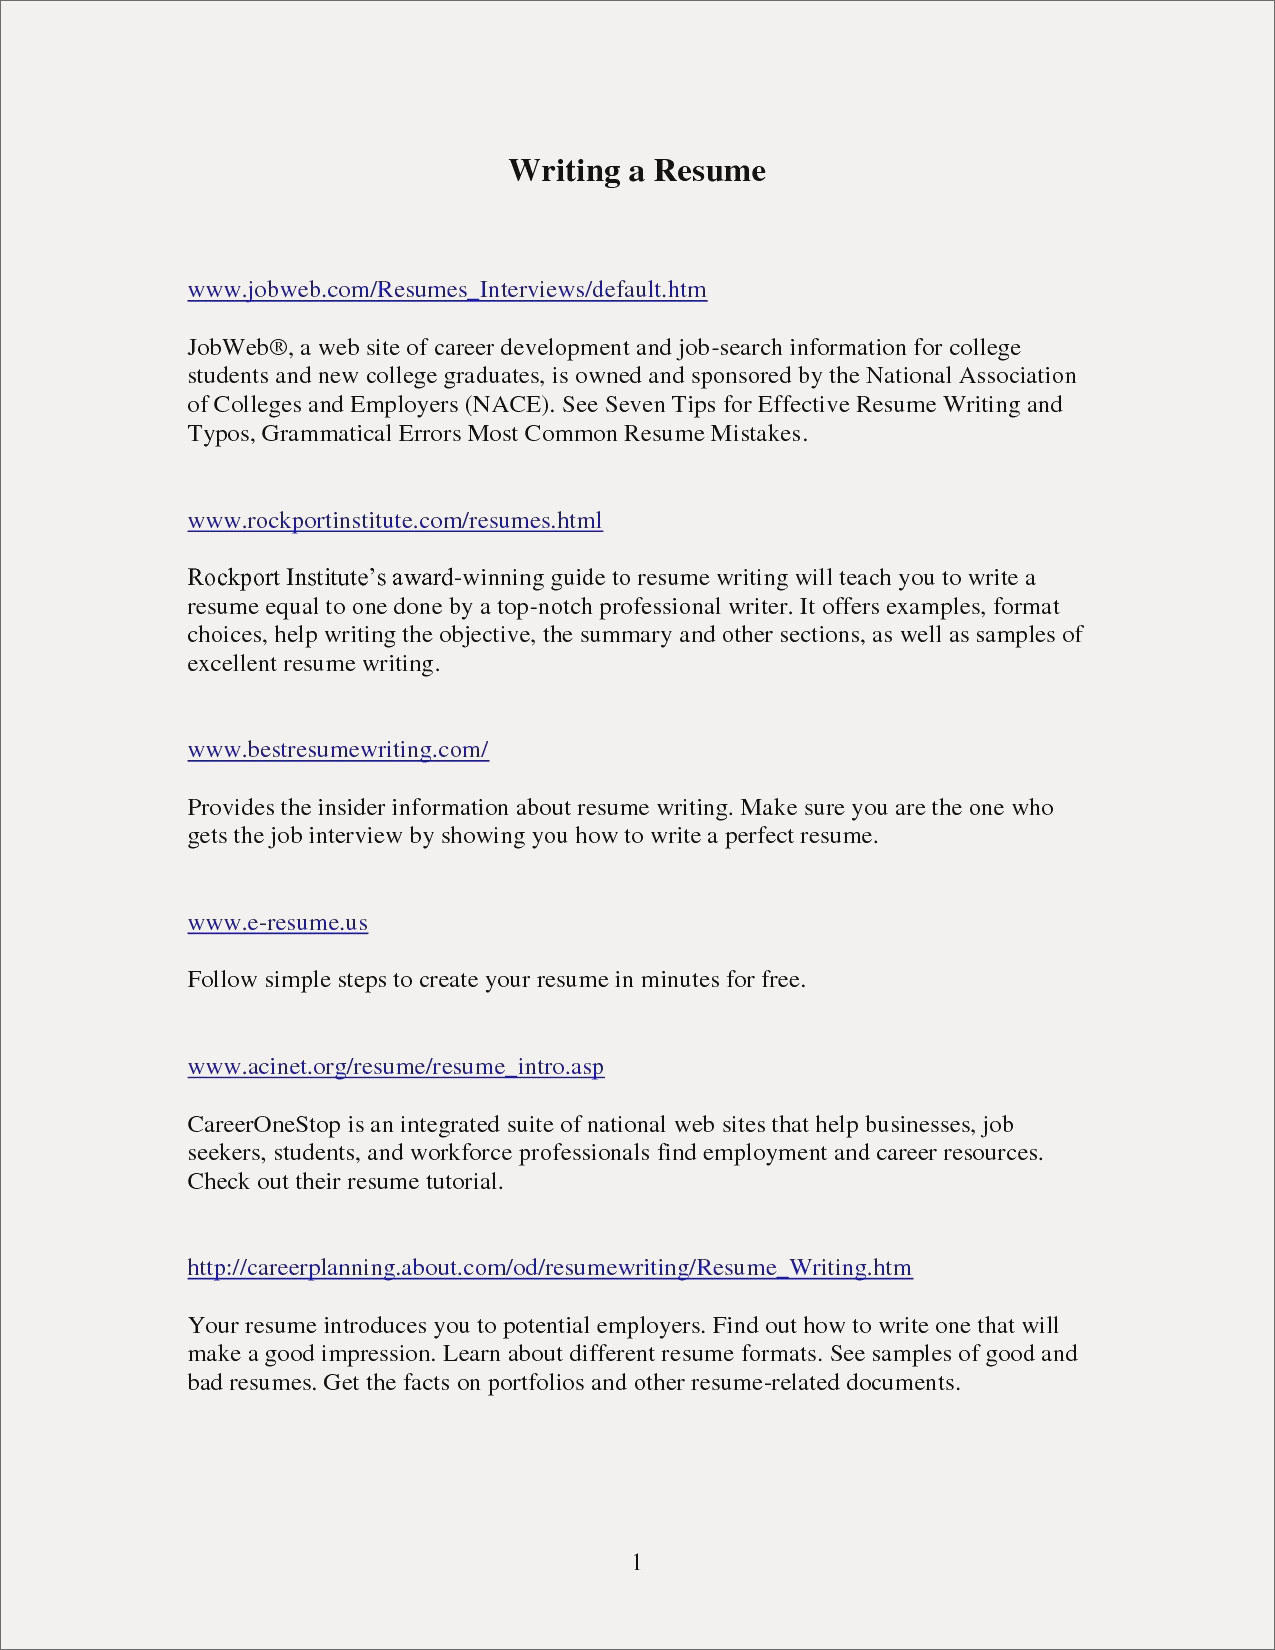 tech support resume template example-Entry Level Technical Support Resume – Sample Entry Level Resume New Entry Level Resume sorority Resume 18-c